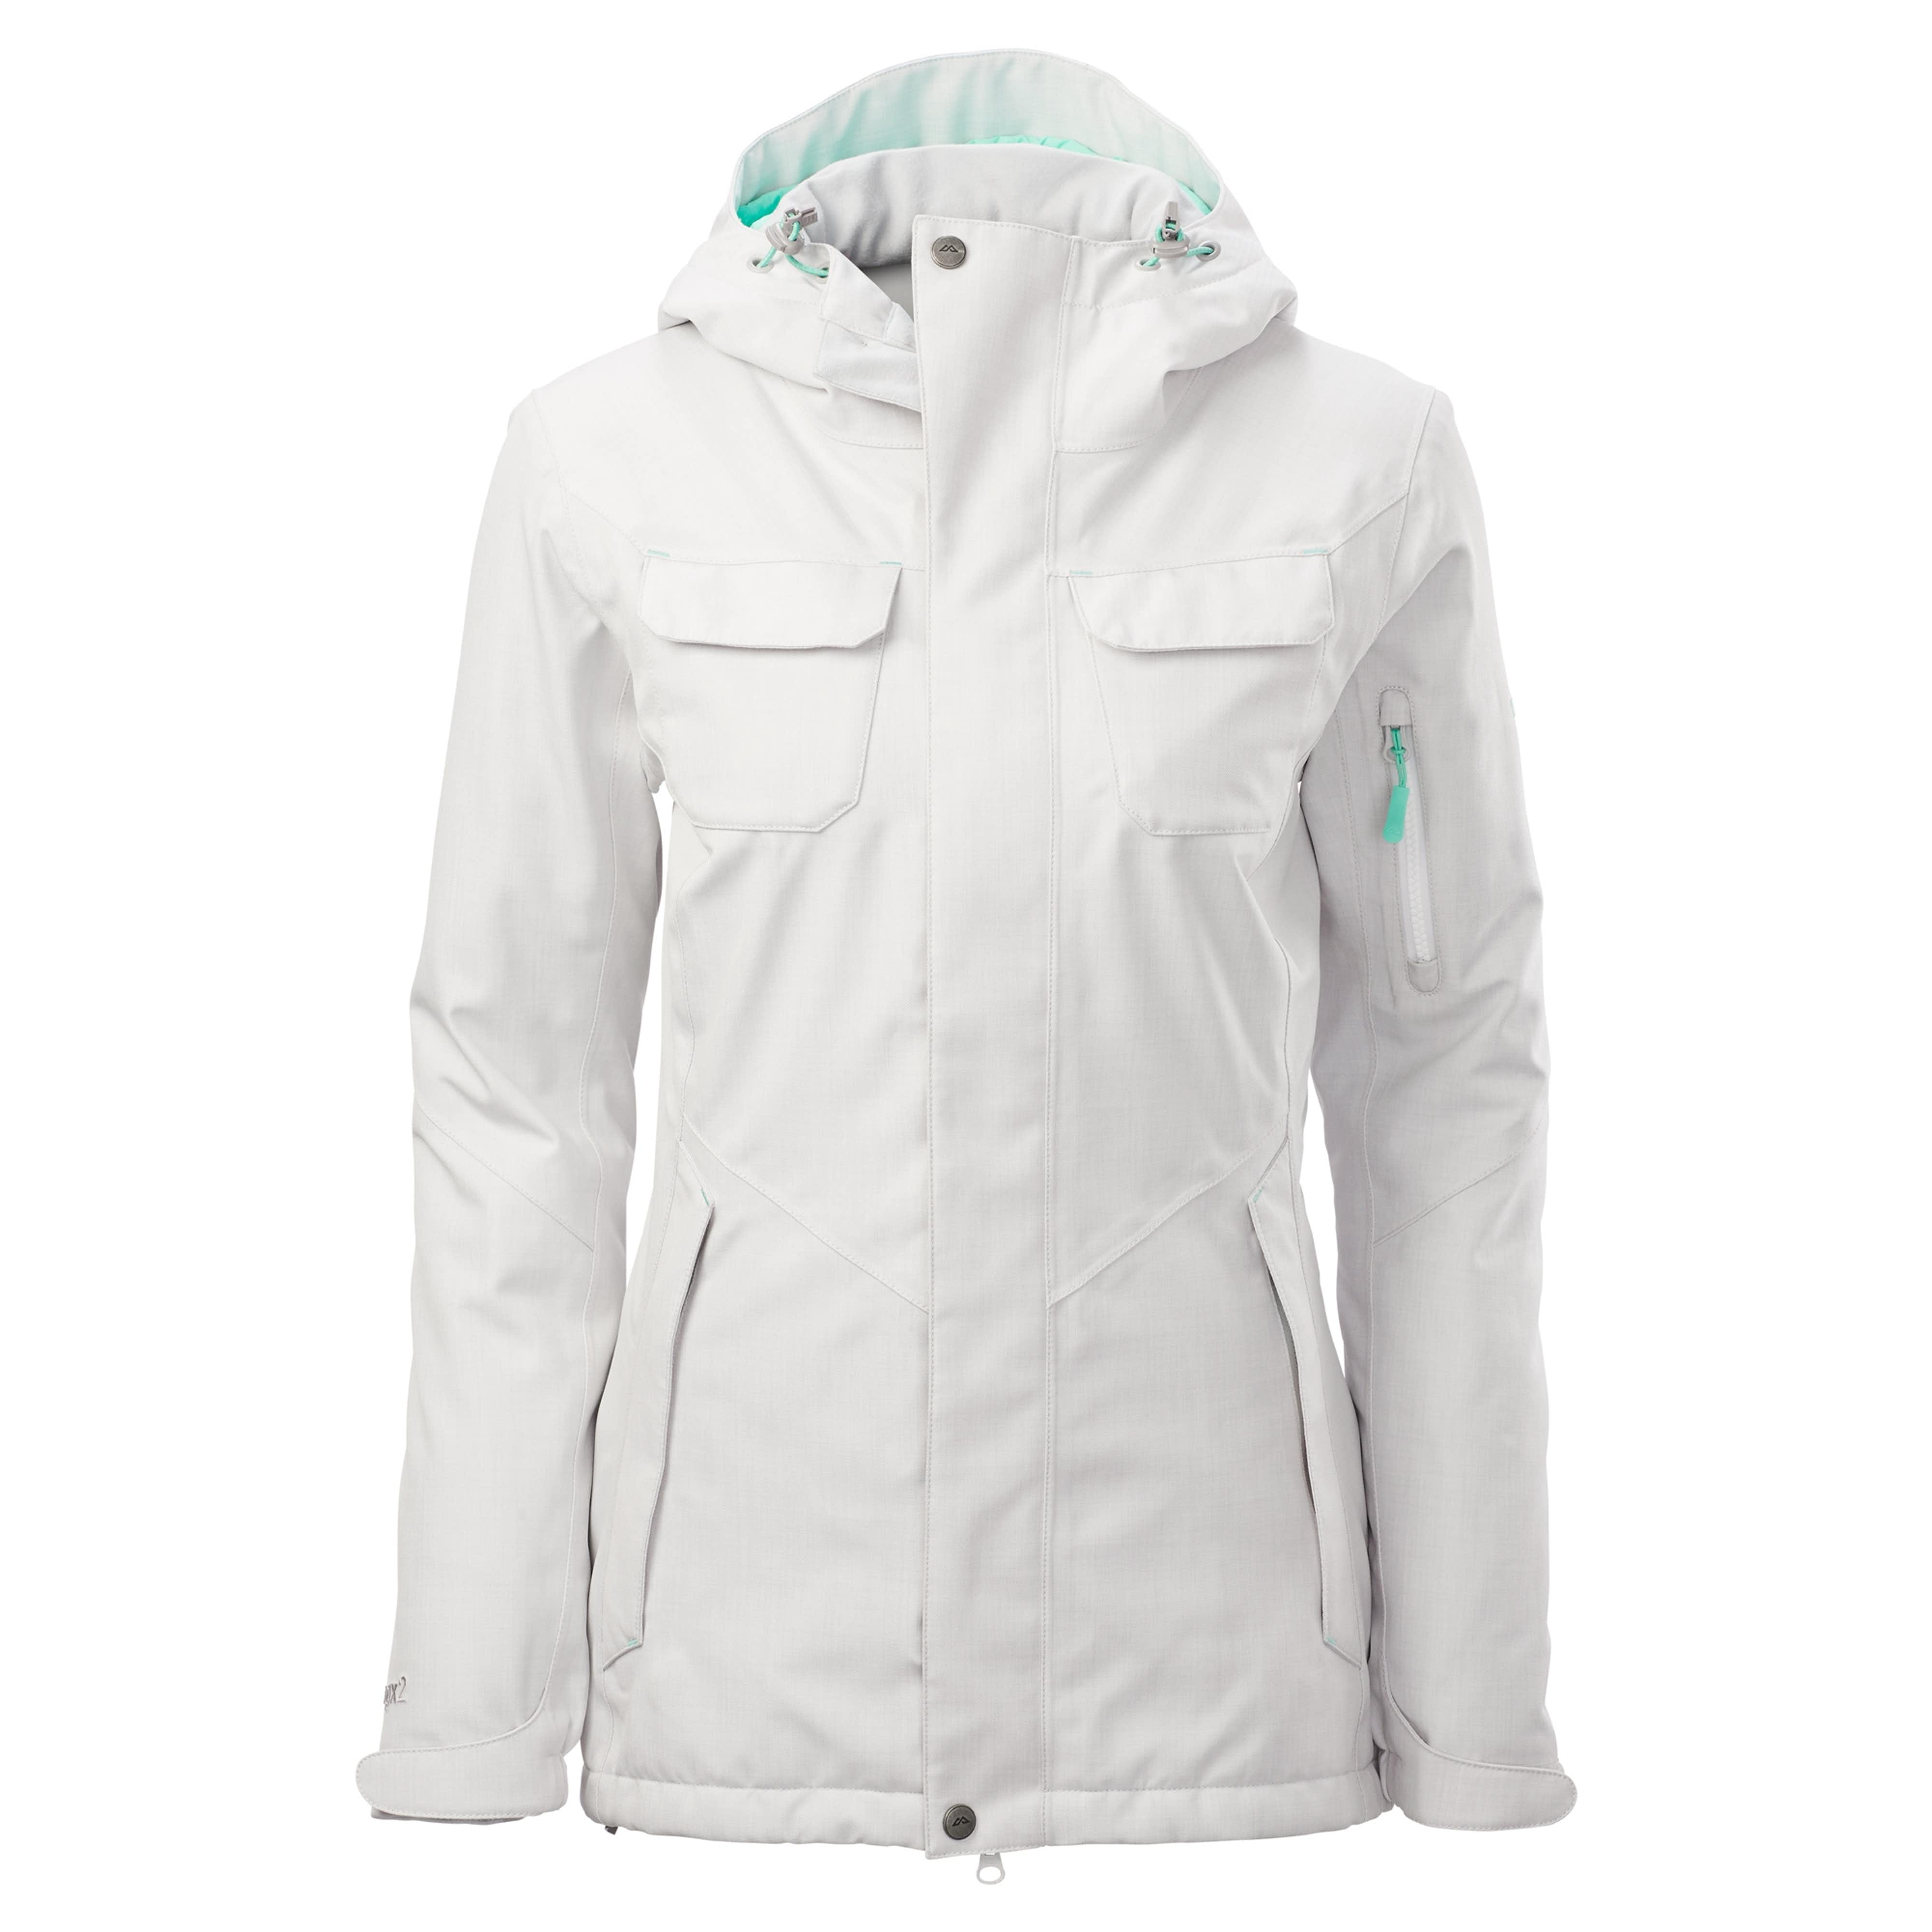 314265cc2c251 Kathmandu Outlet | Reduced for Clearance Travel & Adventure Gear